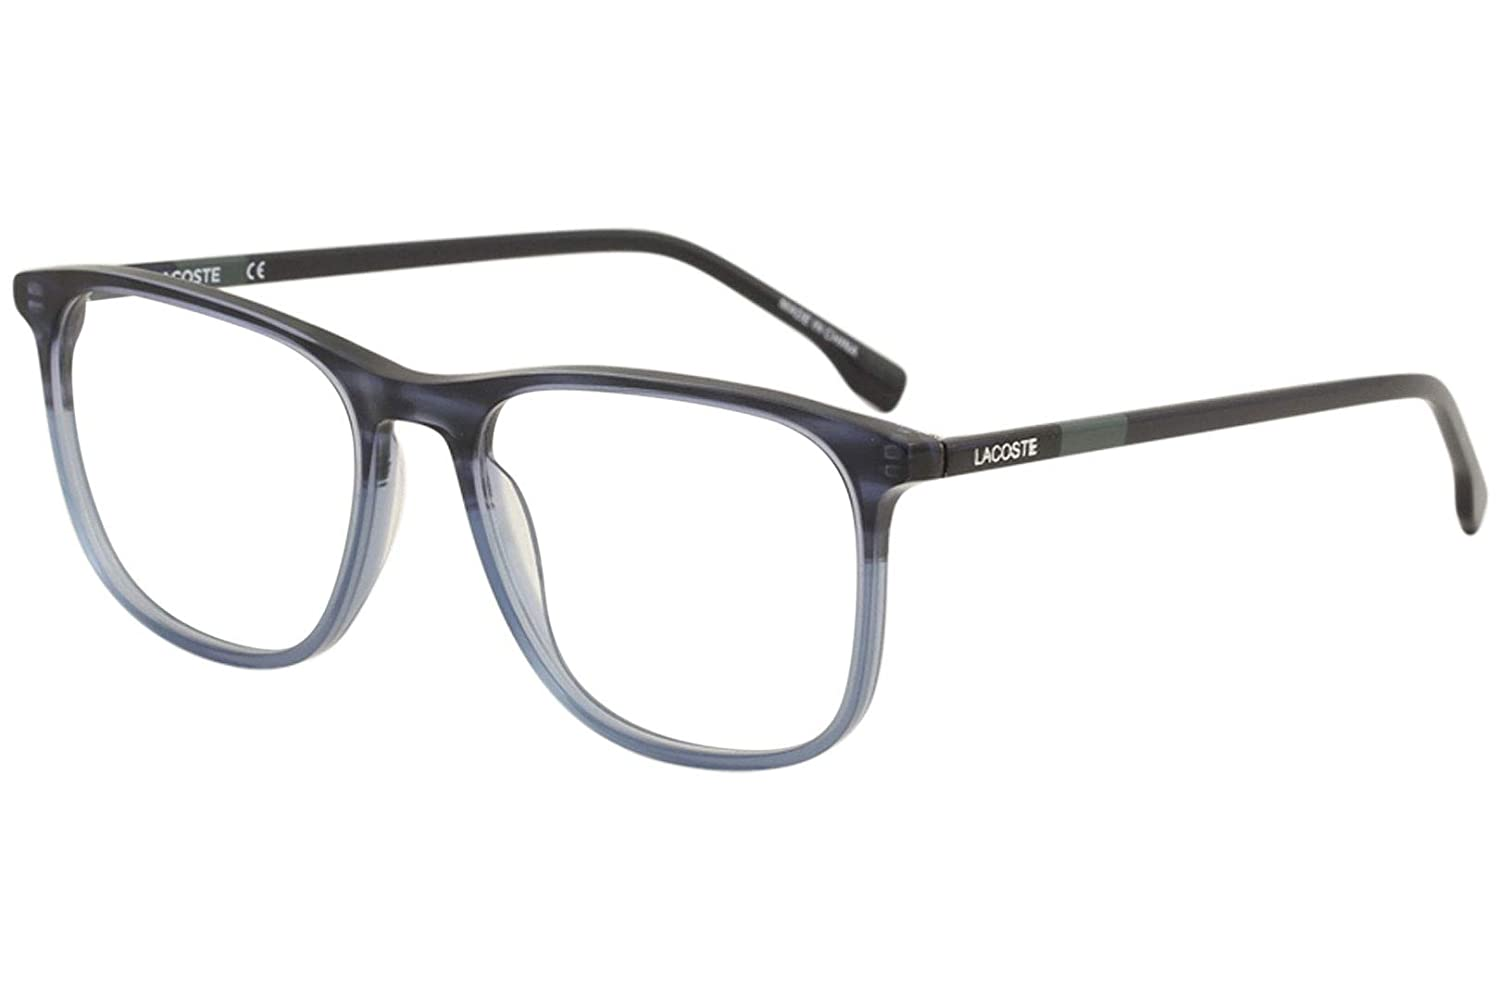 9676ad83dc Eyeglasses LACOSTE L 2823 424 BLUE at Amazon Men s Clothing store